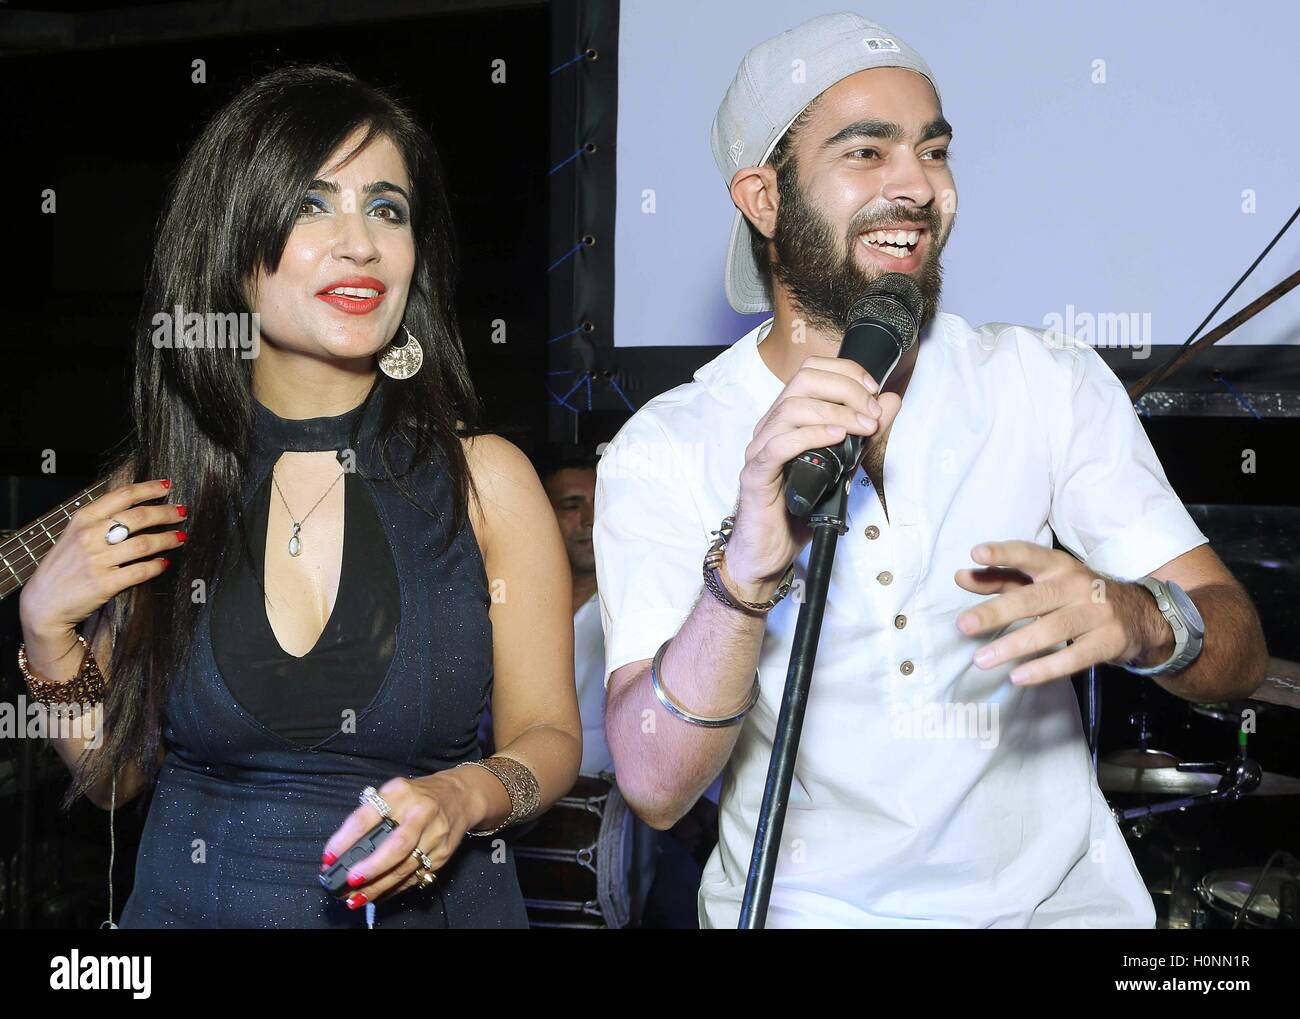 Bollywood personalities, playback singer Shibani Kashyap (L) with actor Manjot Singh at the Drunk House New Delhi - Stock Image